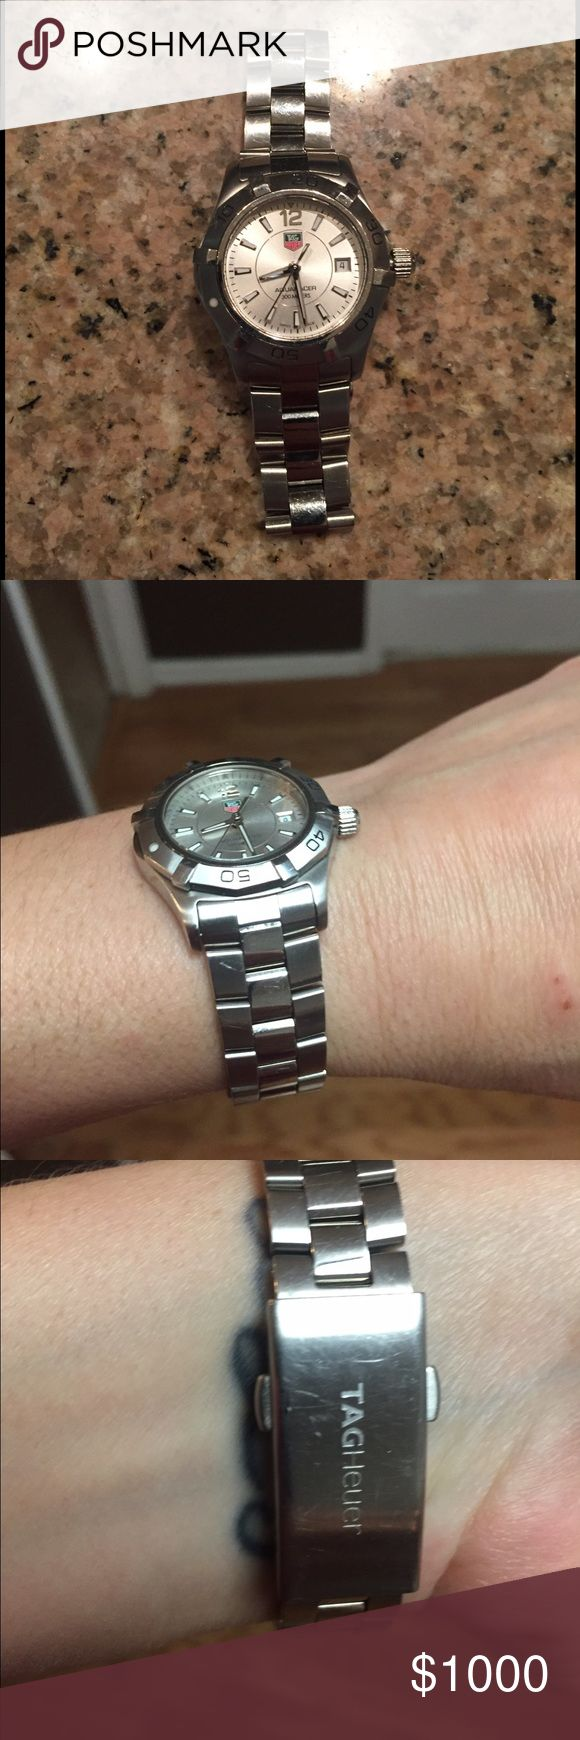 Women's Tag Heur Watch Tag Huer watch, silver, aquaracer collection, purchased new from Jared jewelers, $1800 retail Tag Heuer Jewelry